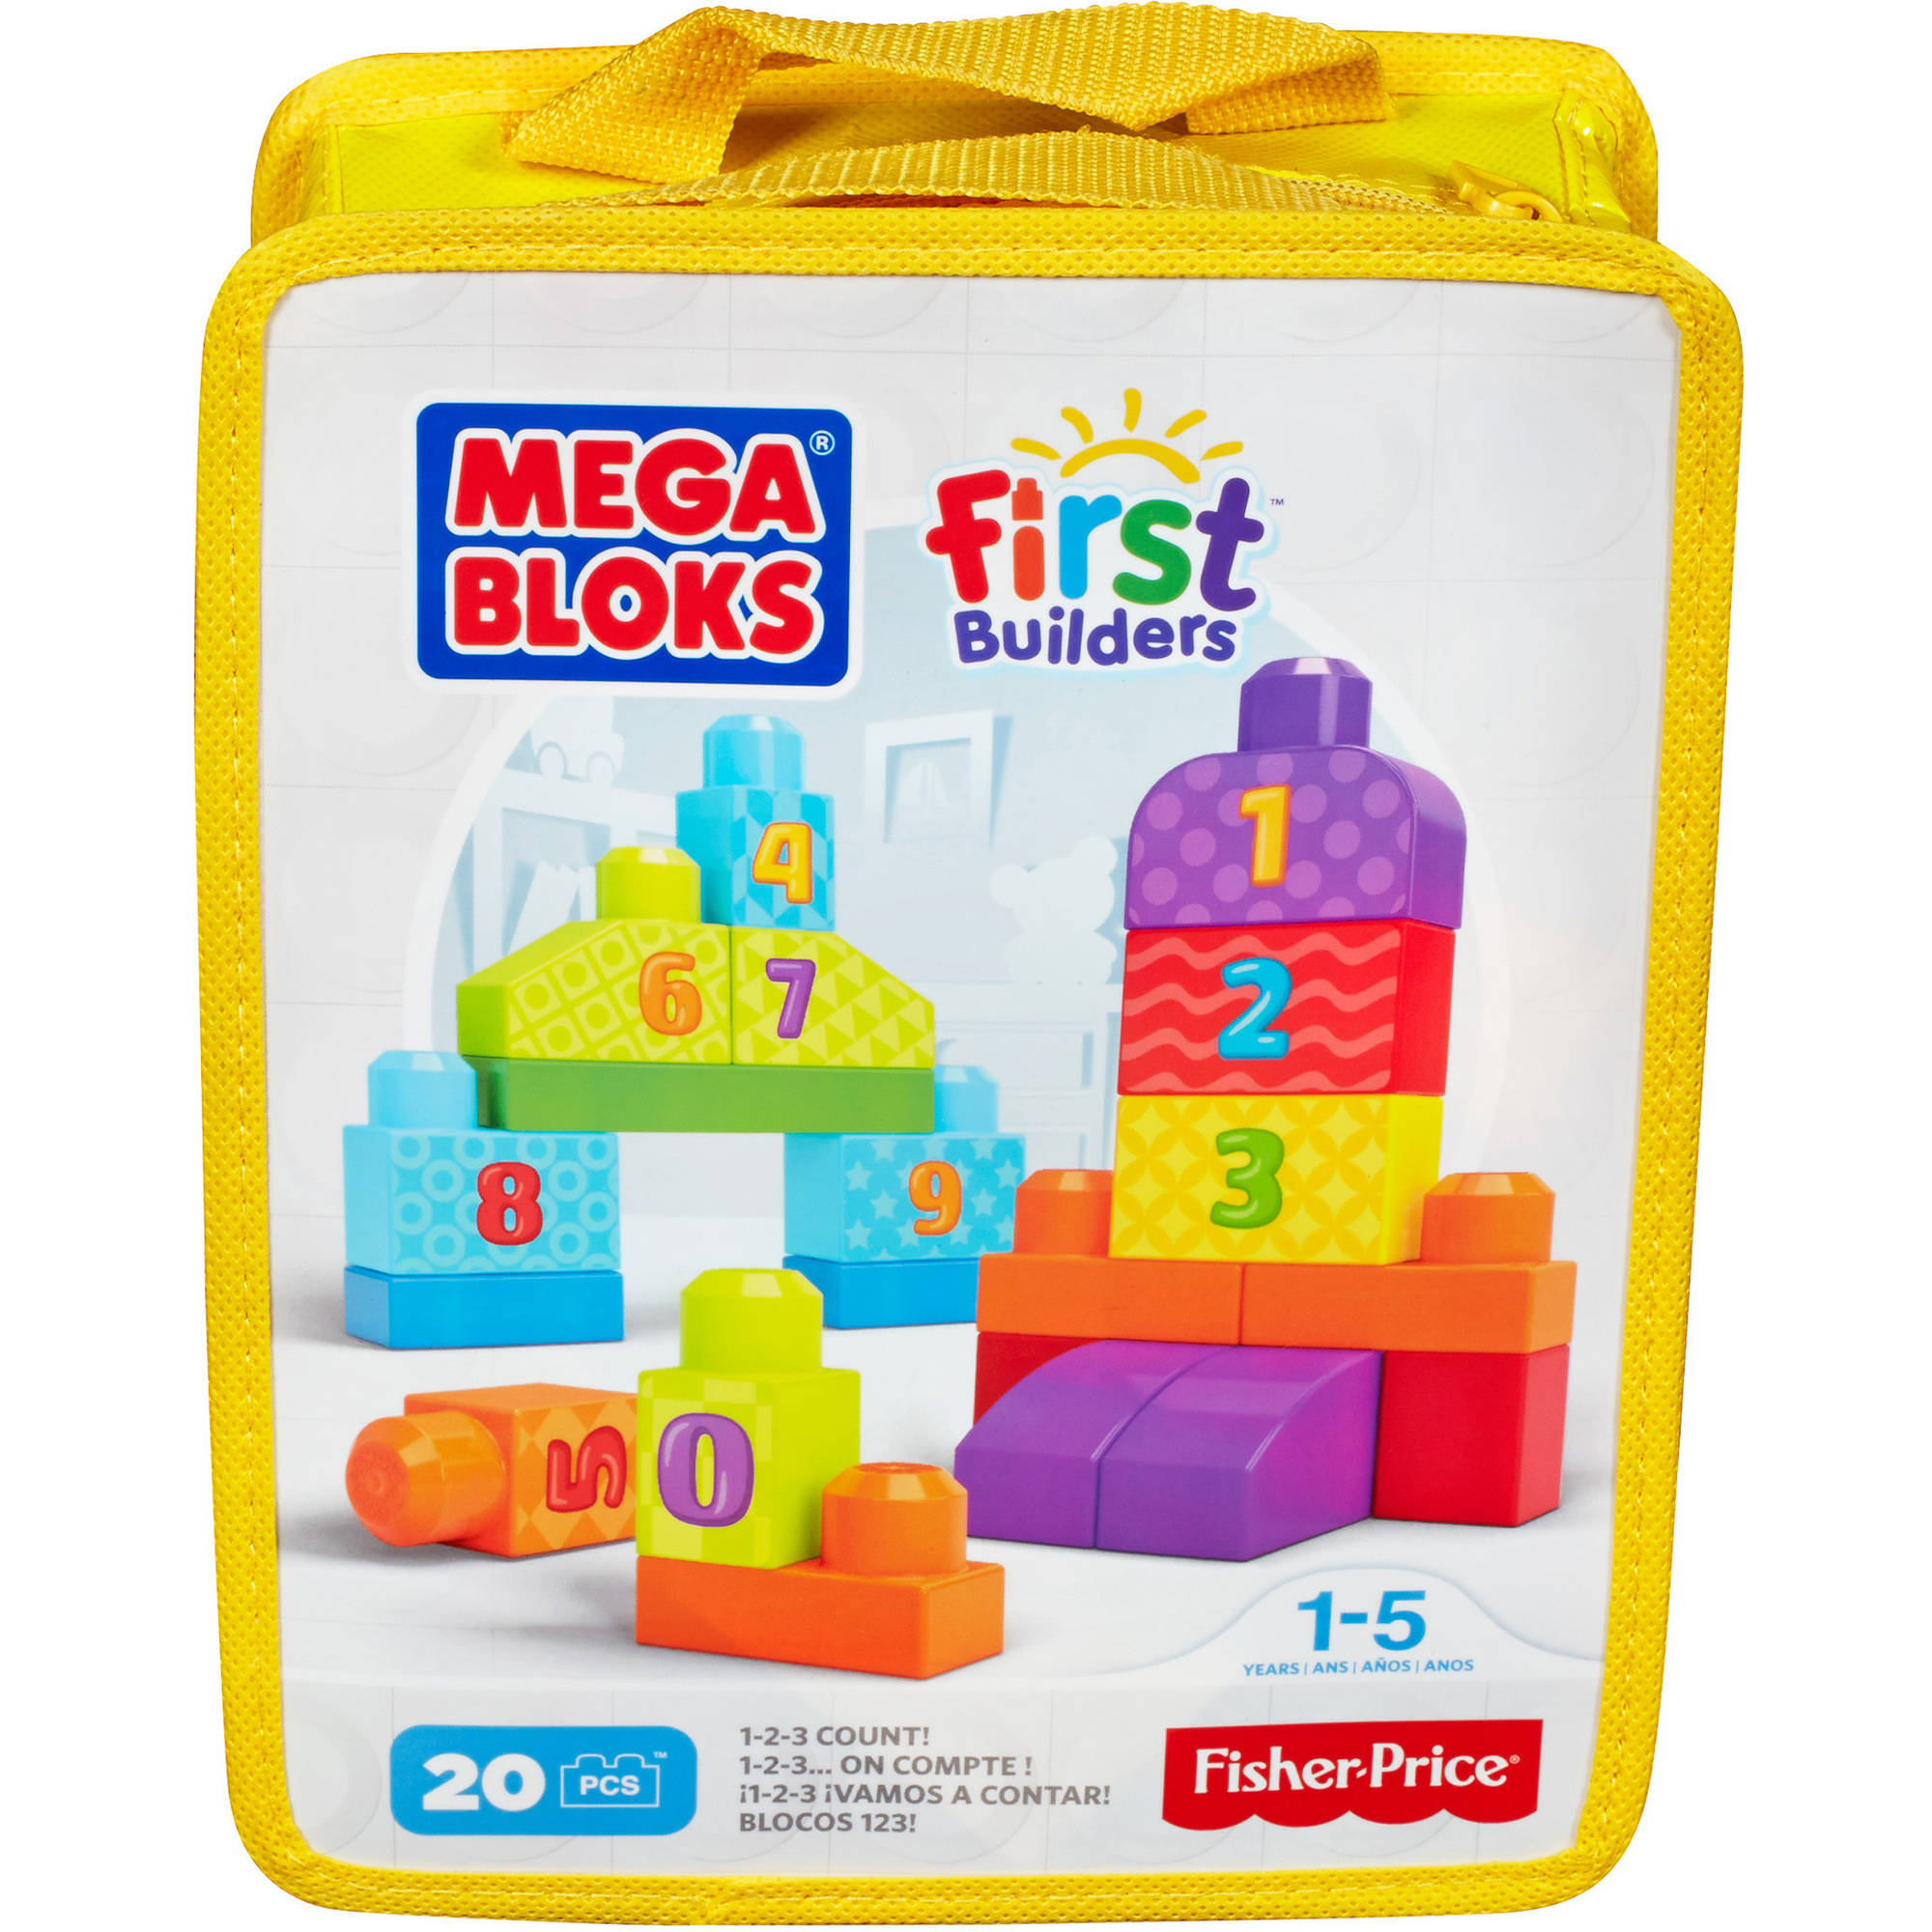 Mega Bloks First Builders 123 Count Playset